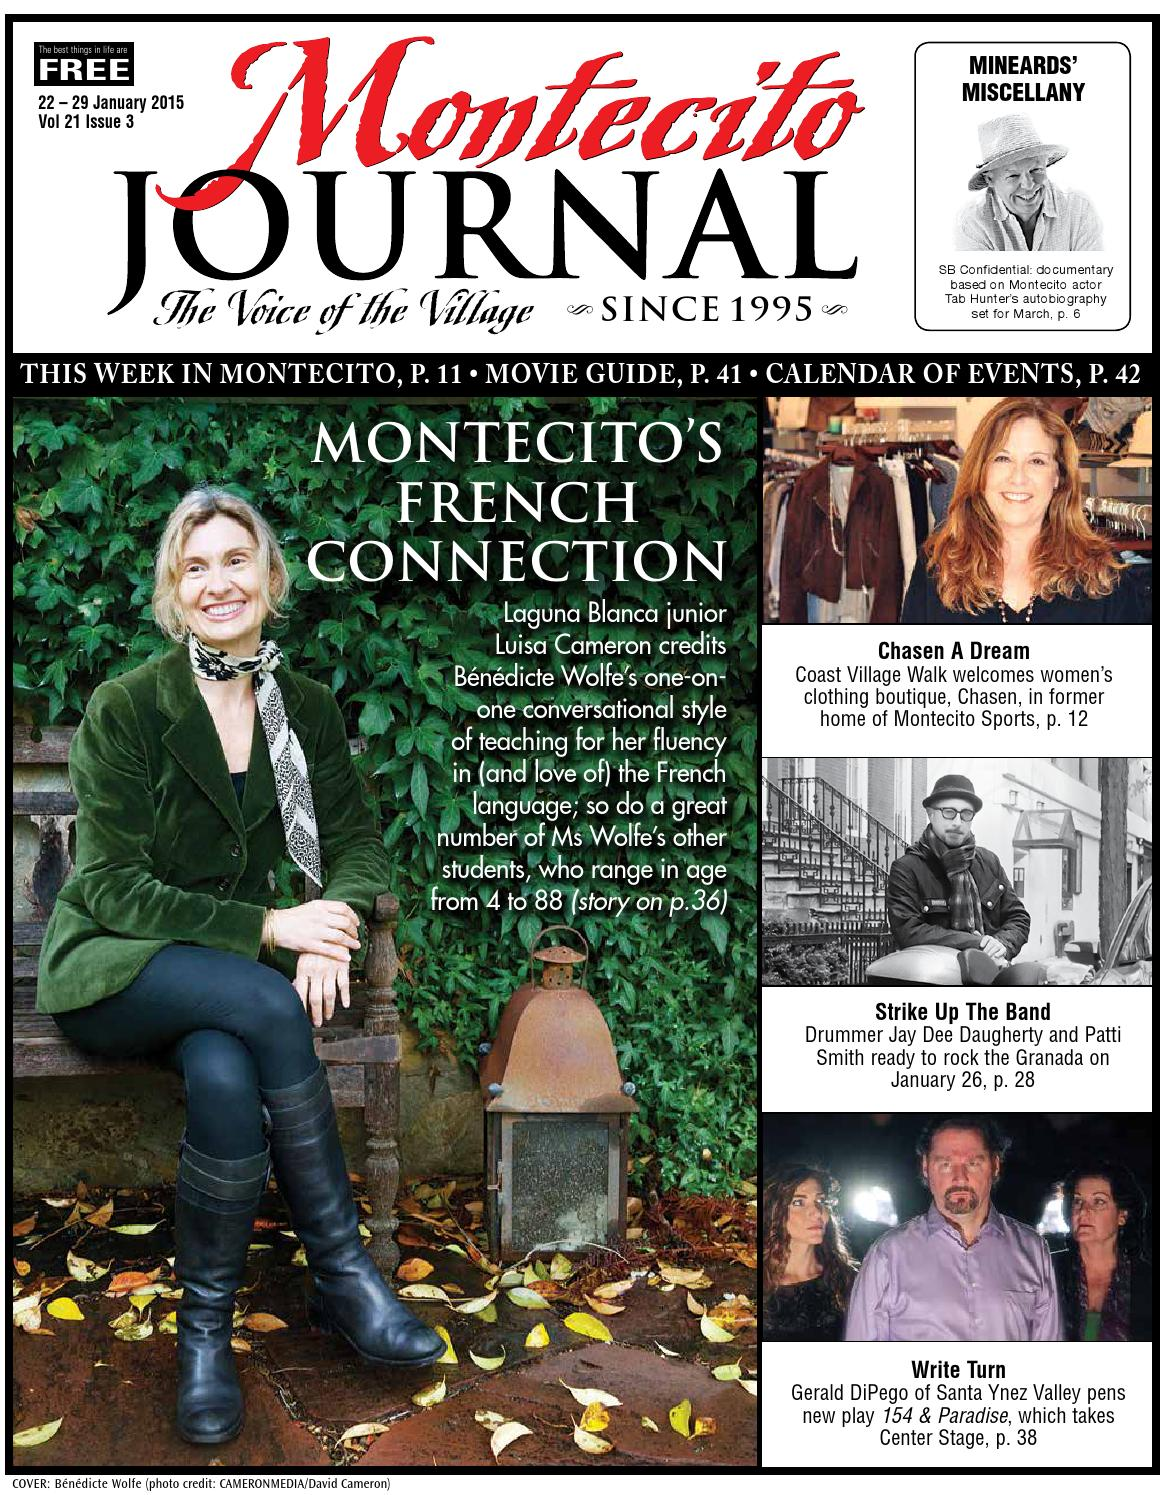 Montecito\'s French Connection by Montecito Journal - issuu